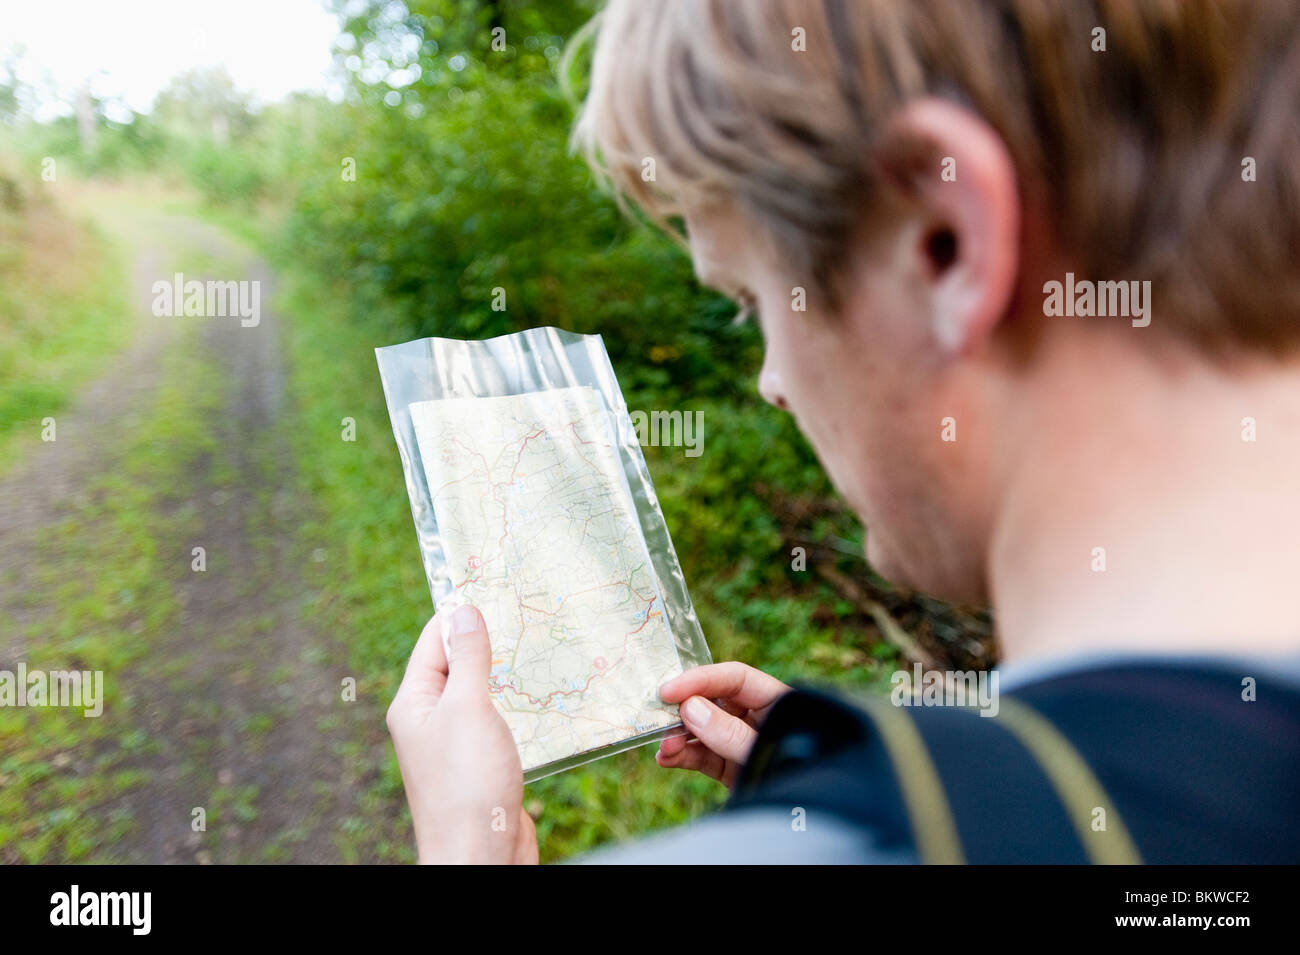 Look at map - Stock Image